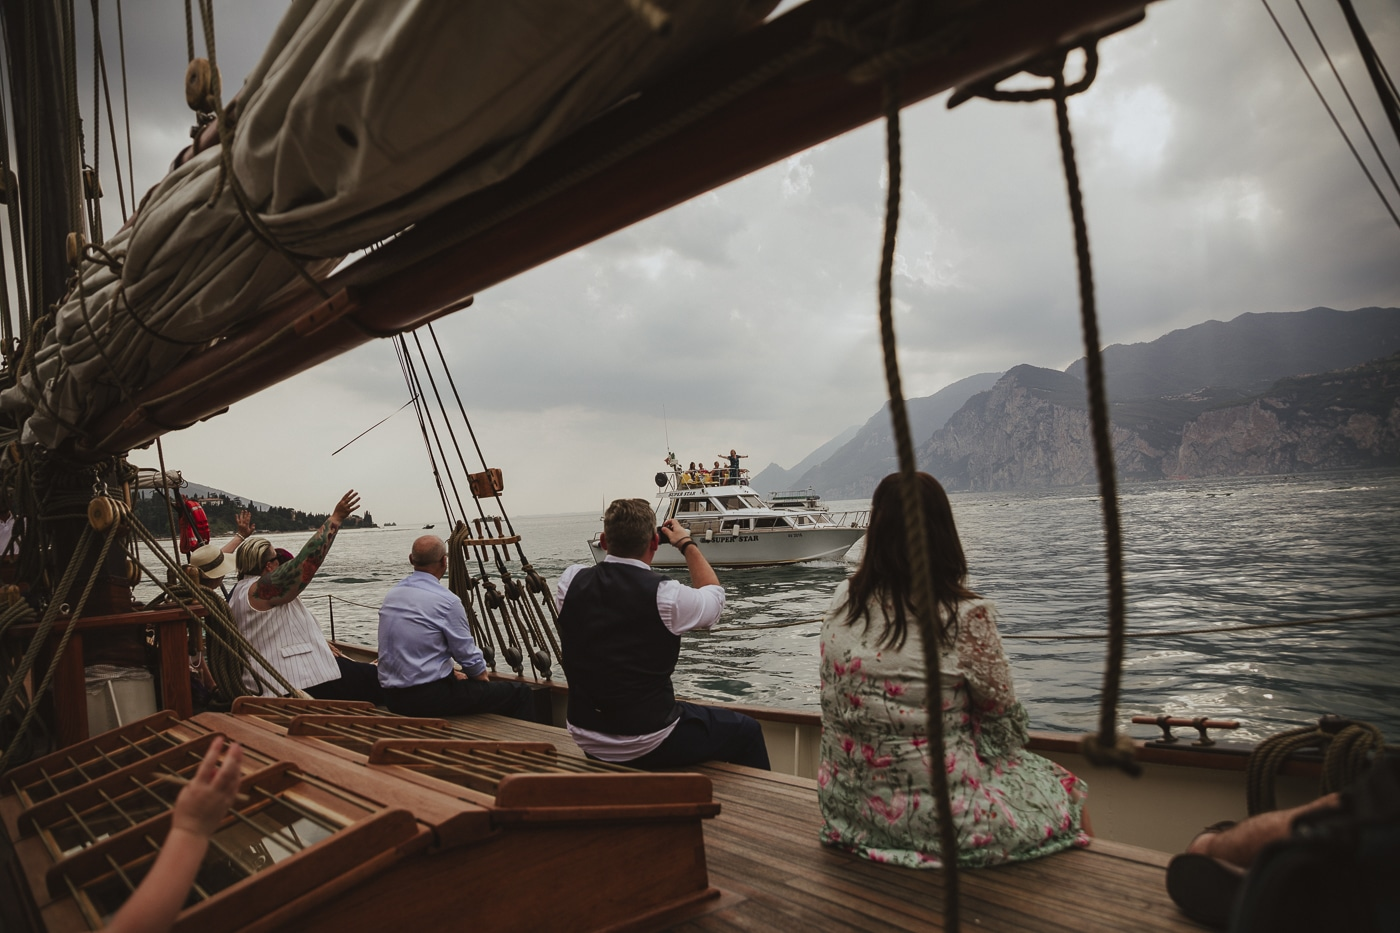 Wedding guests sitting aboard a yacht waving at another boat passing on lake garda in italy with mountains and cloudy skies in the background by Joshua Wyborn